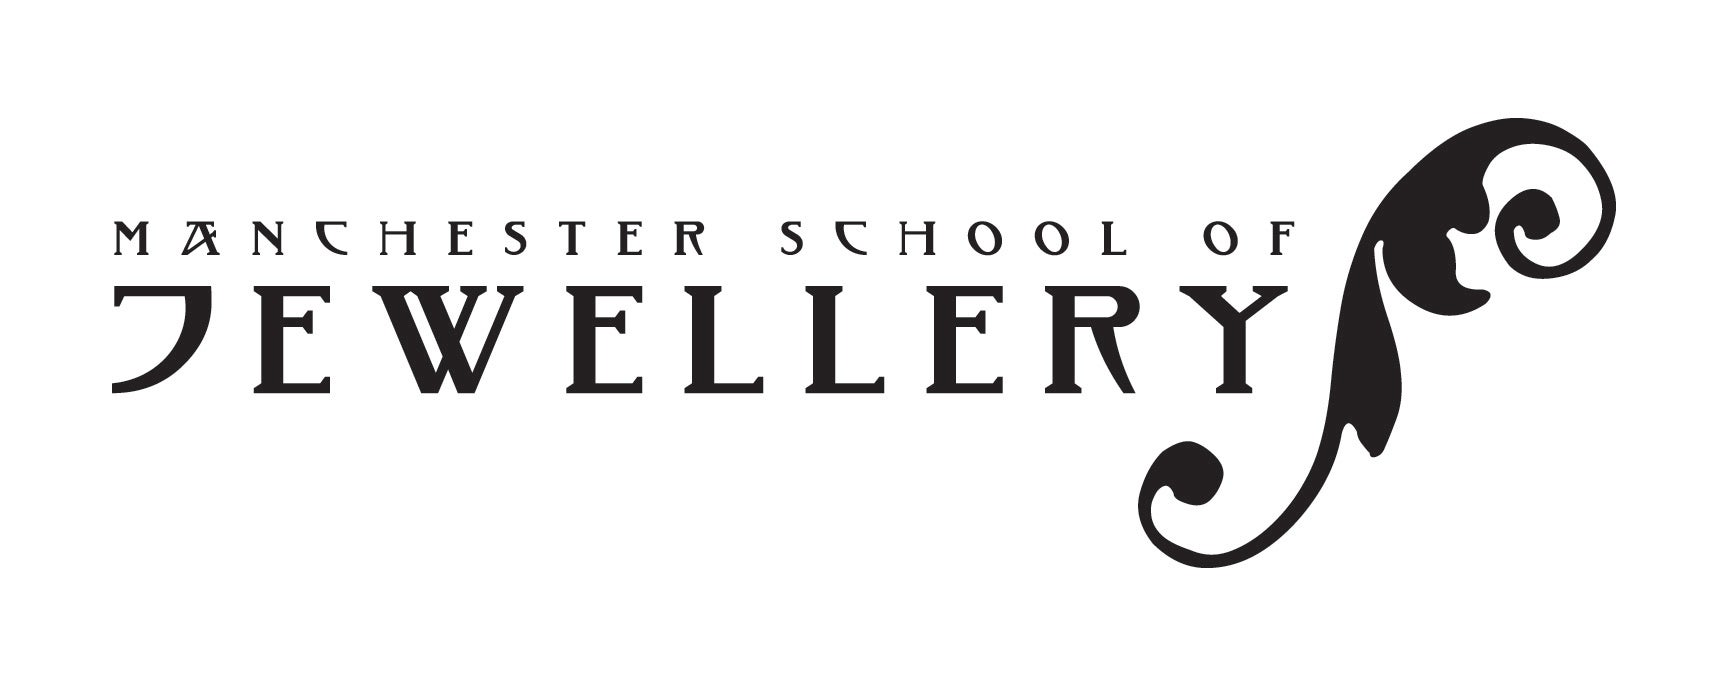 Manchester School of Jewellery